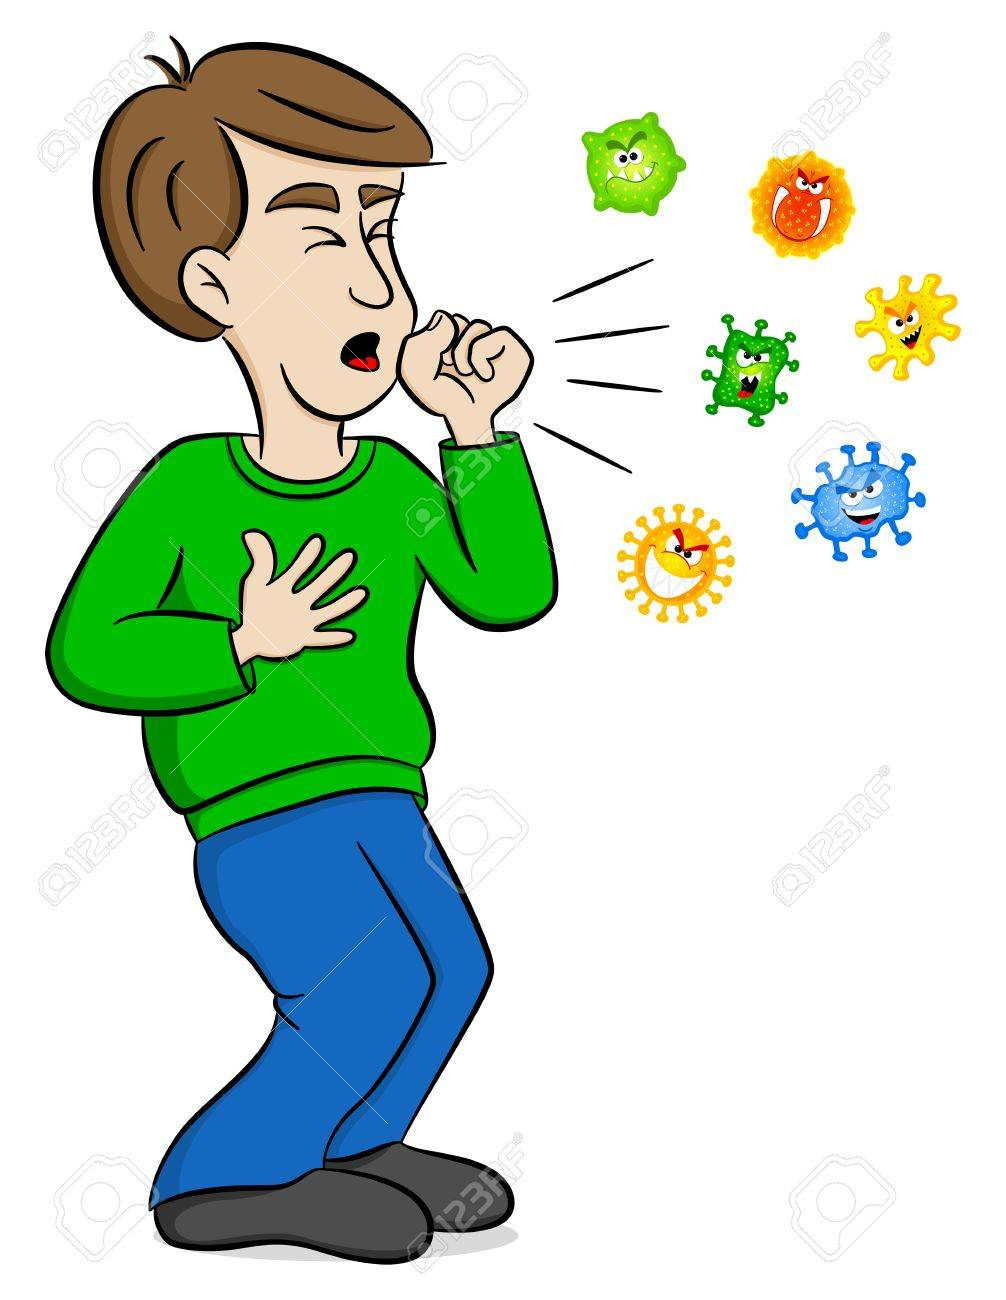 vector illustration of a cartoon man coughing and surrounded royalty free cliparts vectors and stock illustration image 87209789 vector illustration of a cartoon man coughing and surrounded royalty free cliparts vectors and stock illustration image 87209789